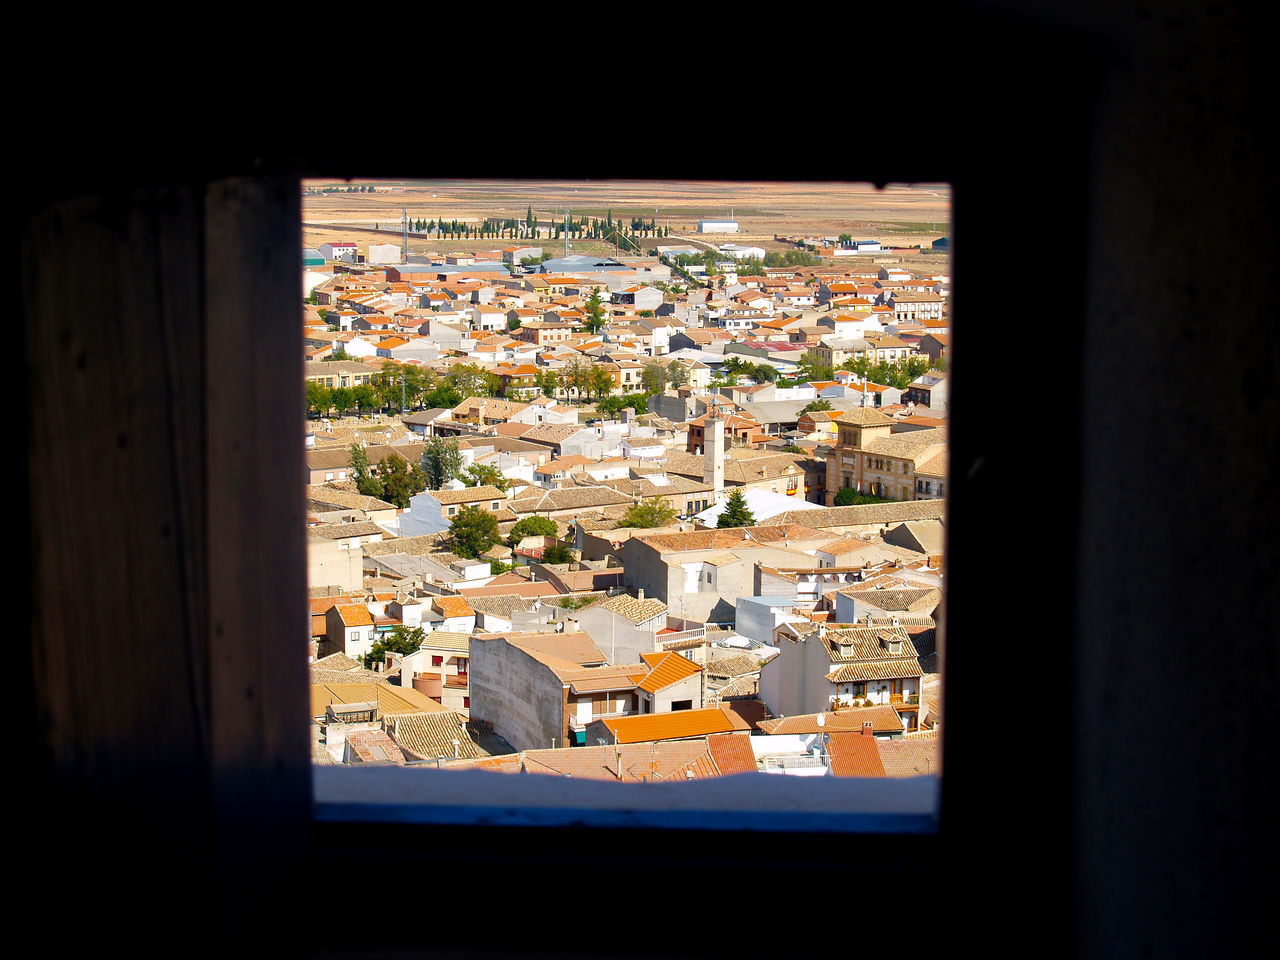 Architecture Architecture Building Exterior Built Structure Cityscape Cityscape Day From My Point Of View House Indoors  Landscape No People Roof Rural Rural Scene Scenery Through The Window Urban Urban Landscape View Viewpoint Village Window